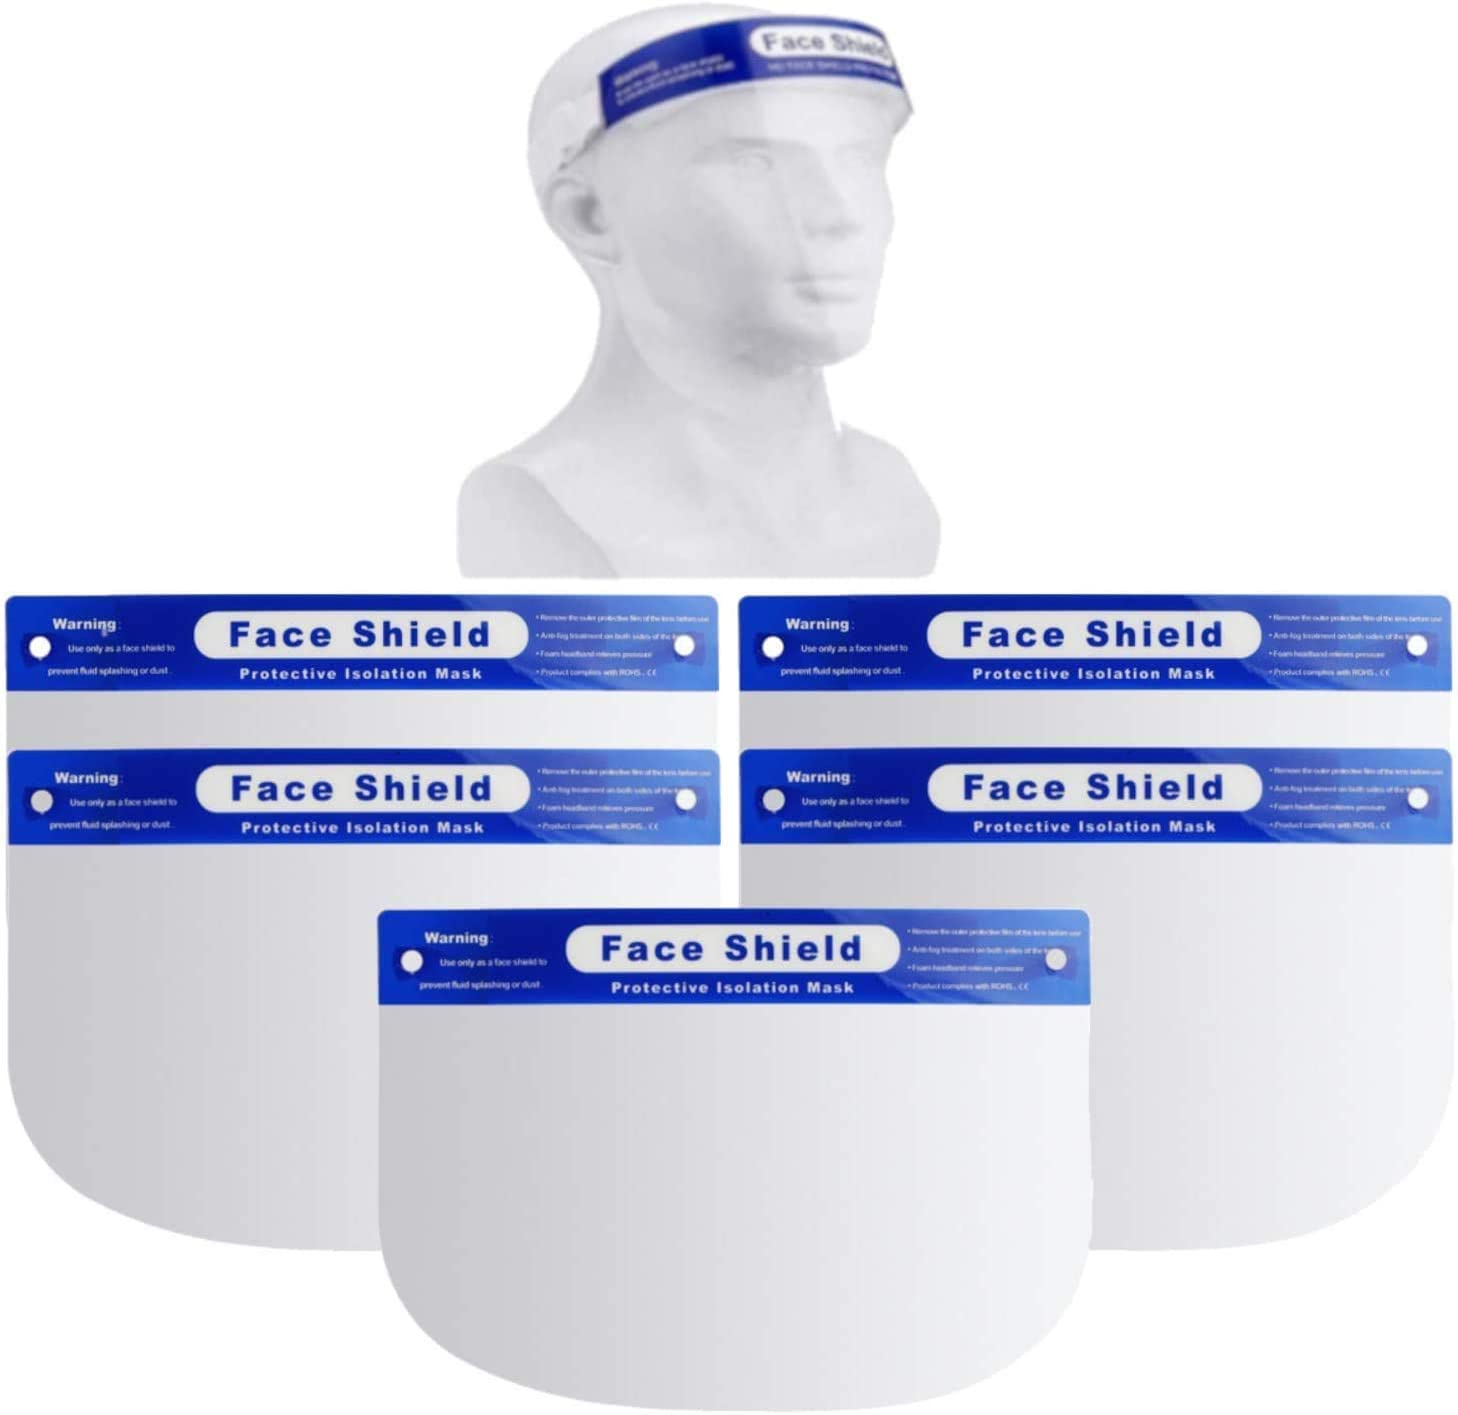 5 Value Pack Face Shields with Full Face Protective